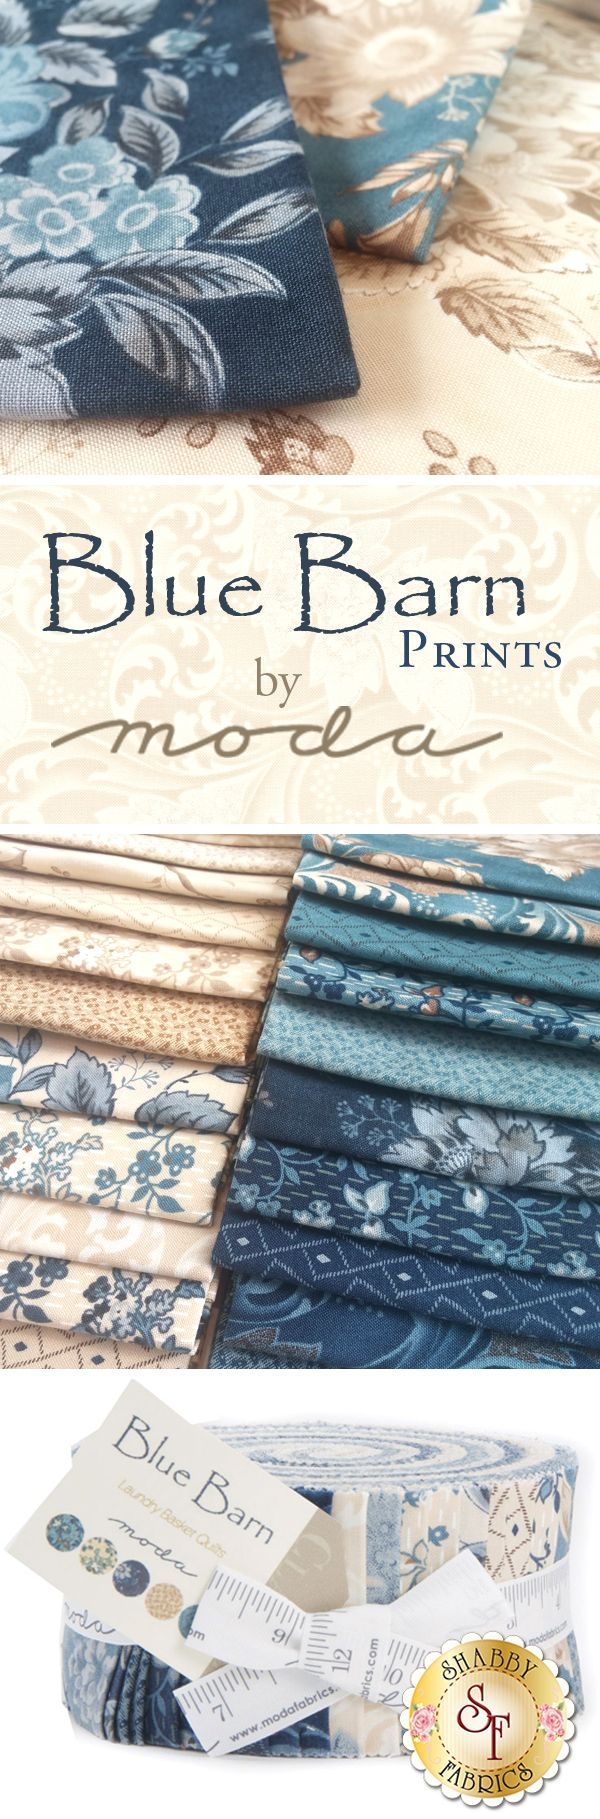 Blue Barn - Moda Fabrics The Blue Barn fabric collection brings together a range of prints and batiks into a cohesive line. A collection from Laundry Basket Quilts, it ranges from dramatic florals and paisleys to simplistic geometric designs to swirling and unique batiks!